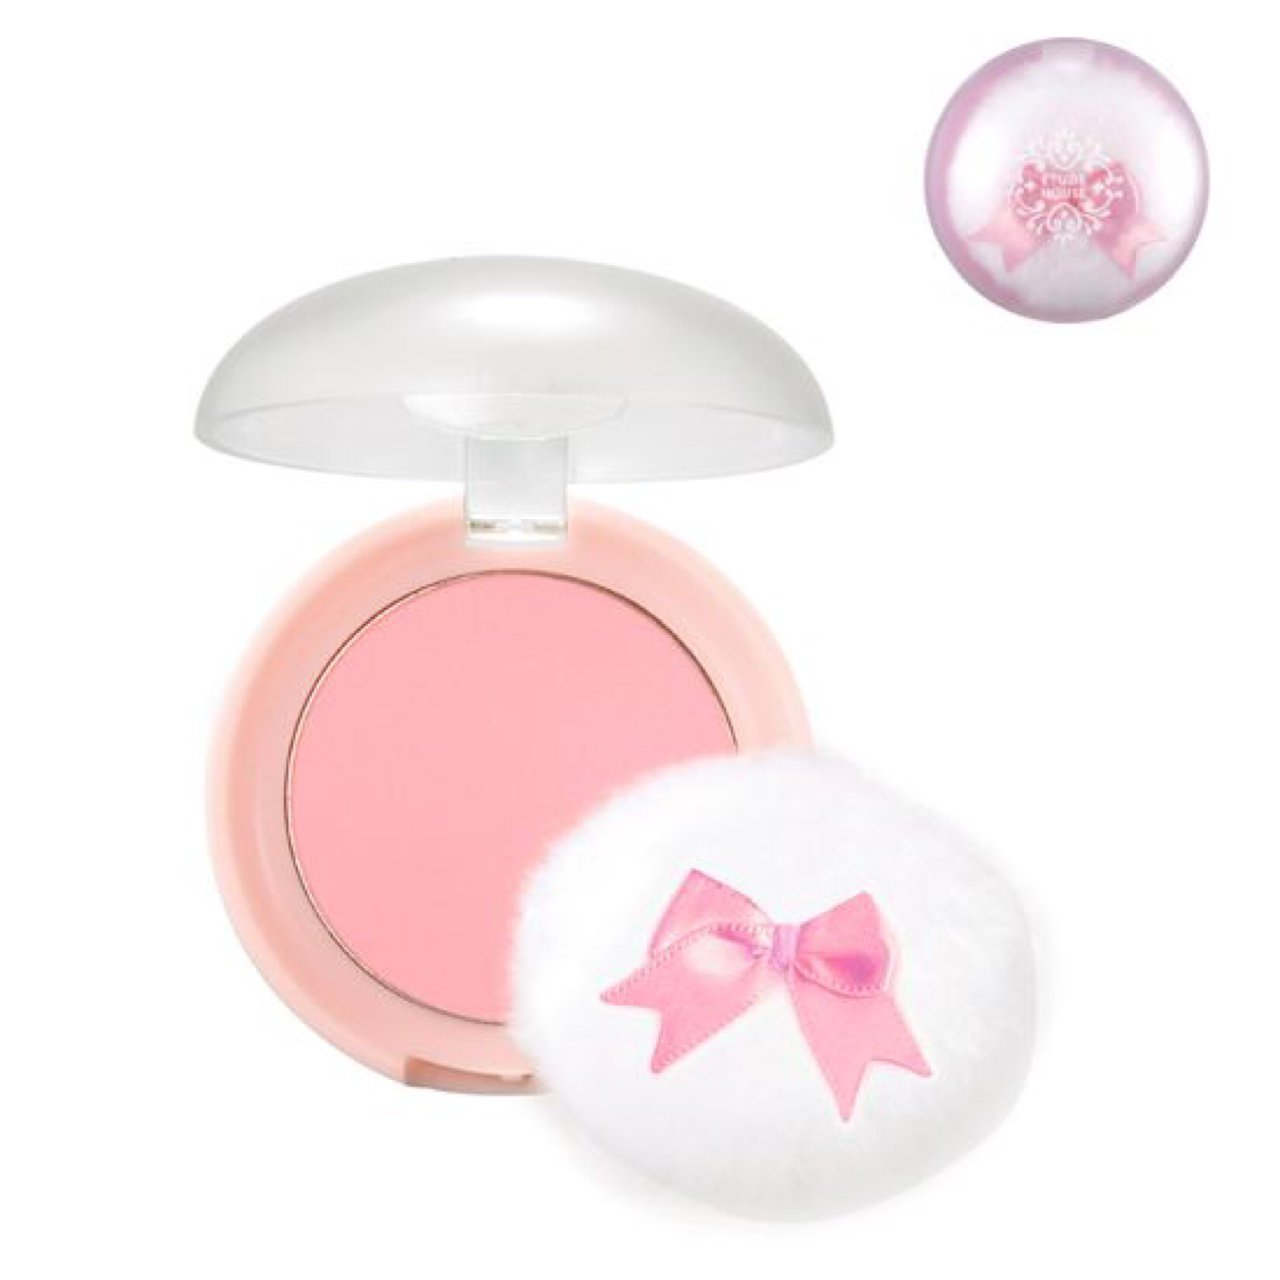 Etude House Lovely Cookie Blusher In 10 Peach Out The Once Depop